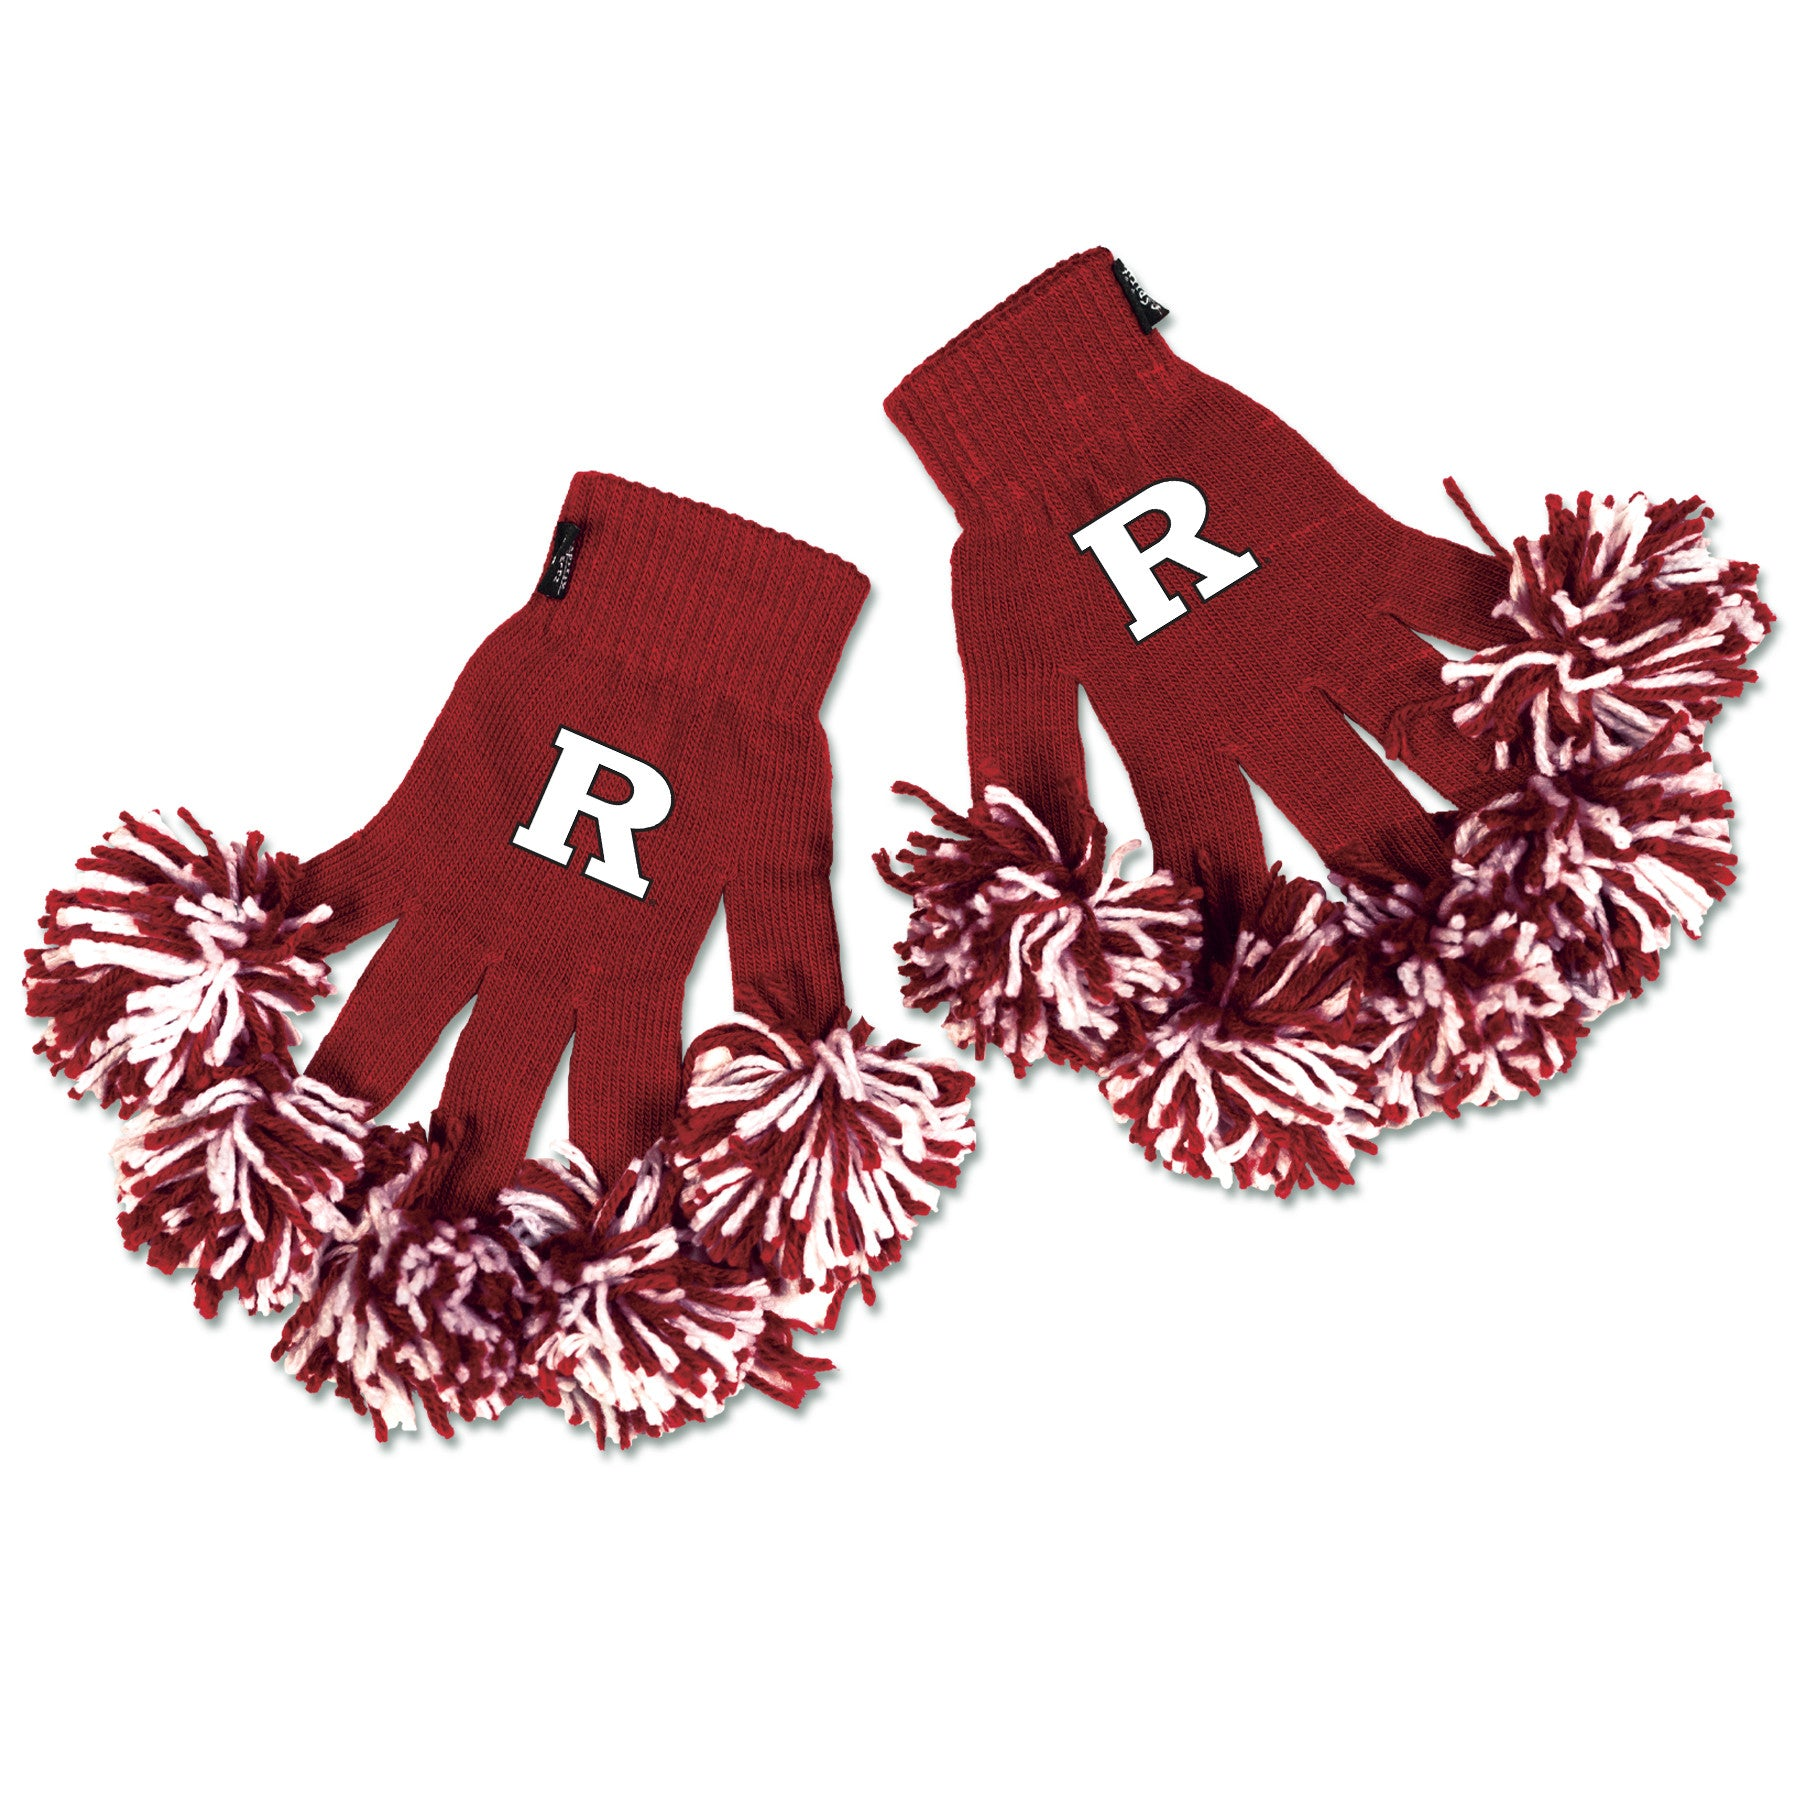 Rutgers Scarlet Knights NCAA Spirit Fingerz Cheerleading Pom-Pom Gloves